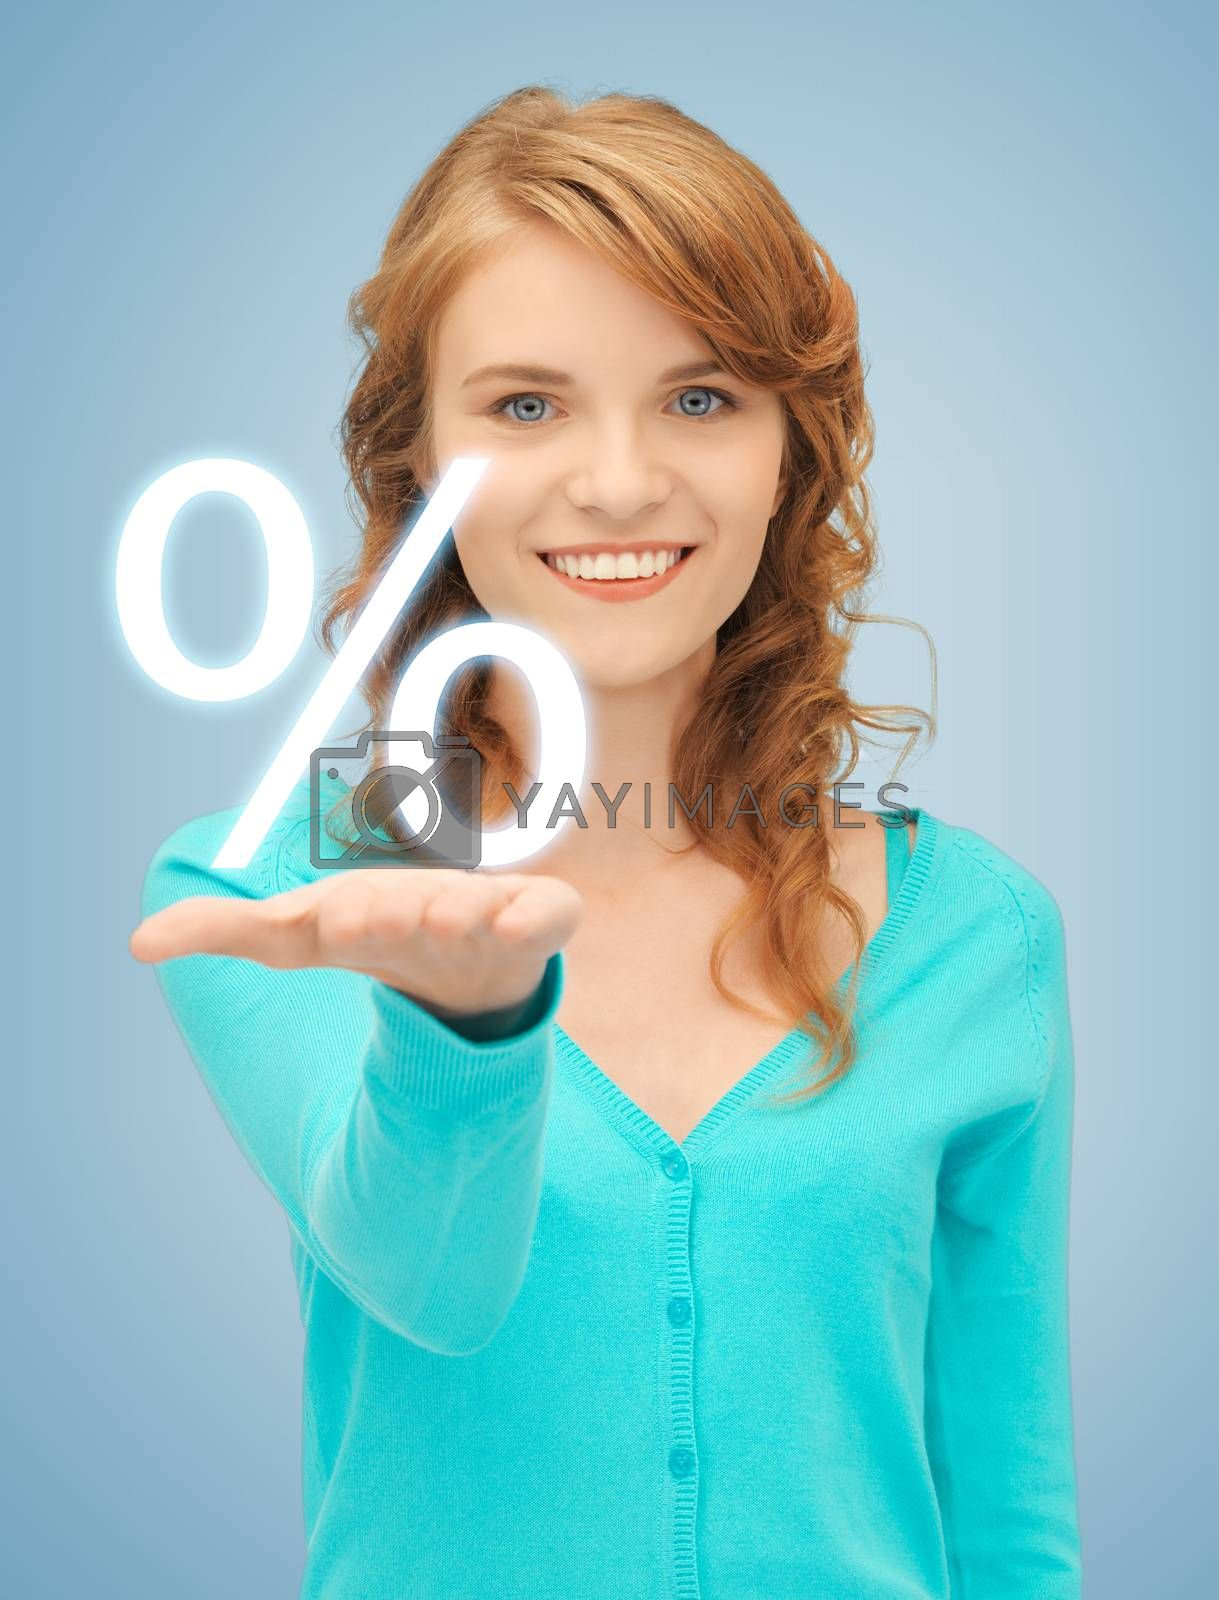 girl showing sign of percent in her hand by dolgachov